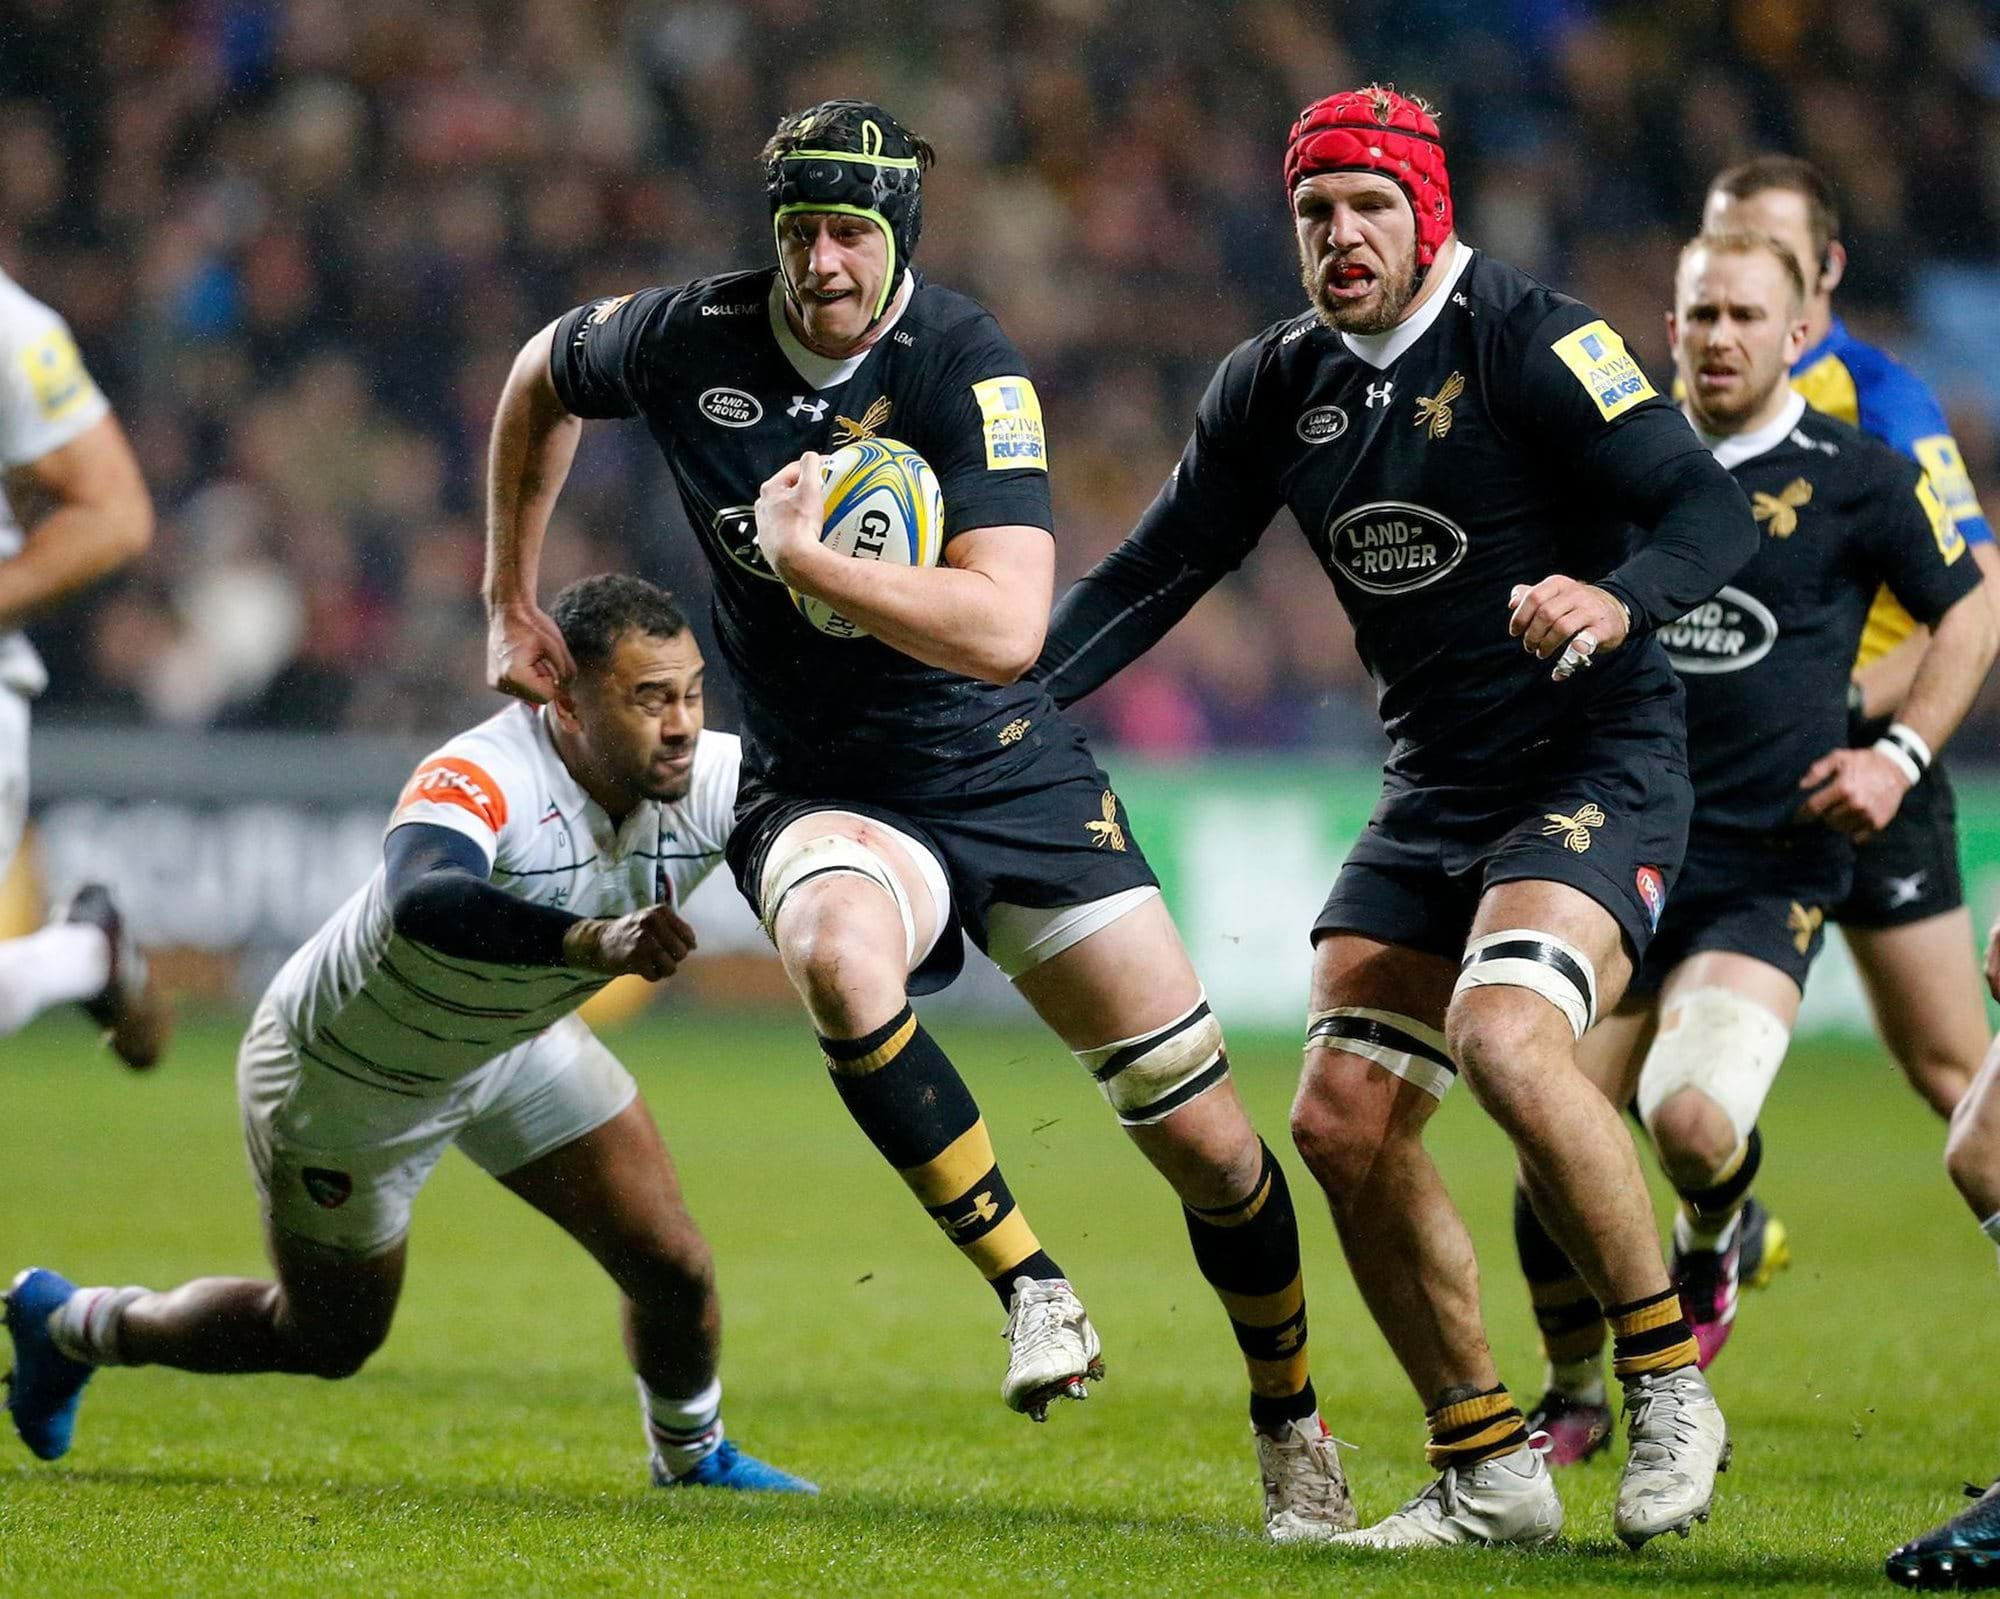 James Gaskell confident big Ricoh Arena occasion will inspire Wasps